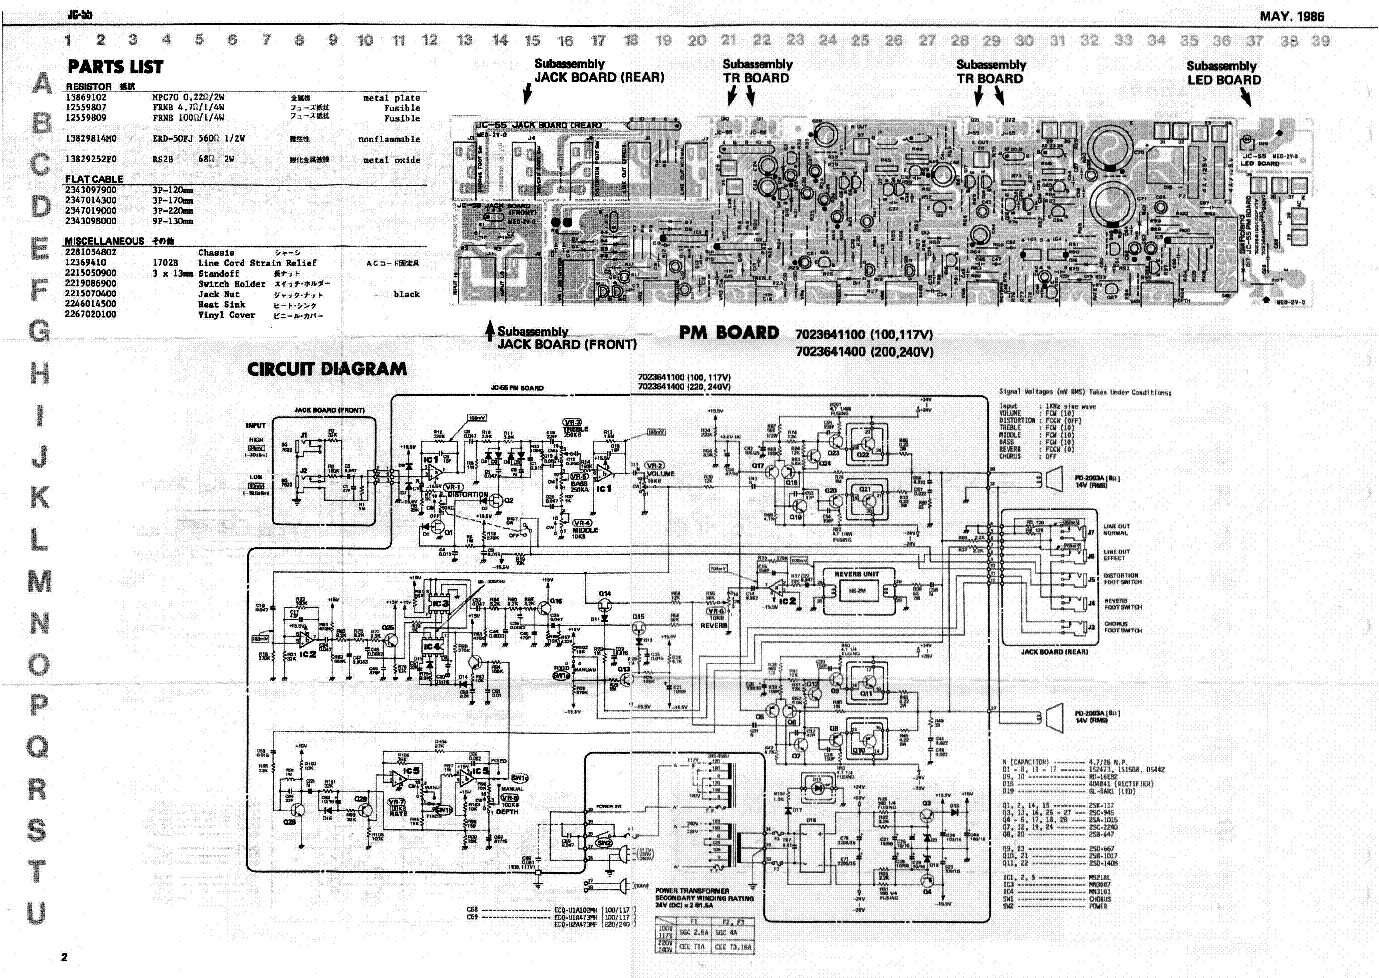 ROLAND JC-55 Service Manual download, schematics, eeprom